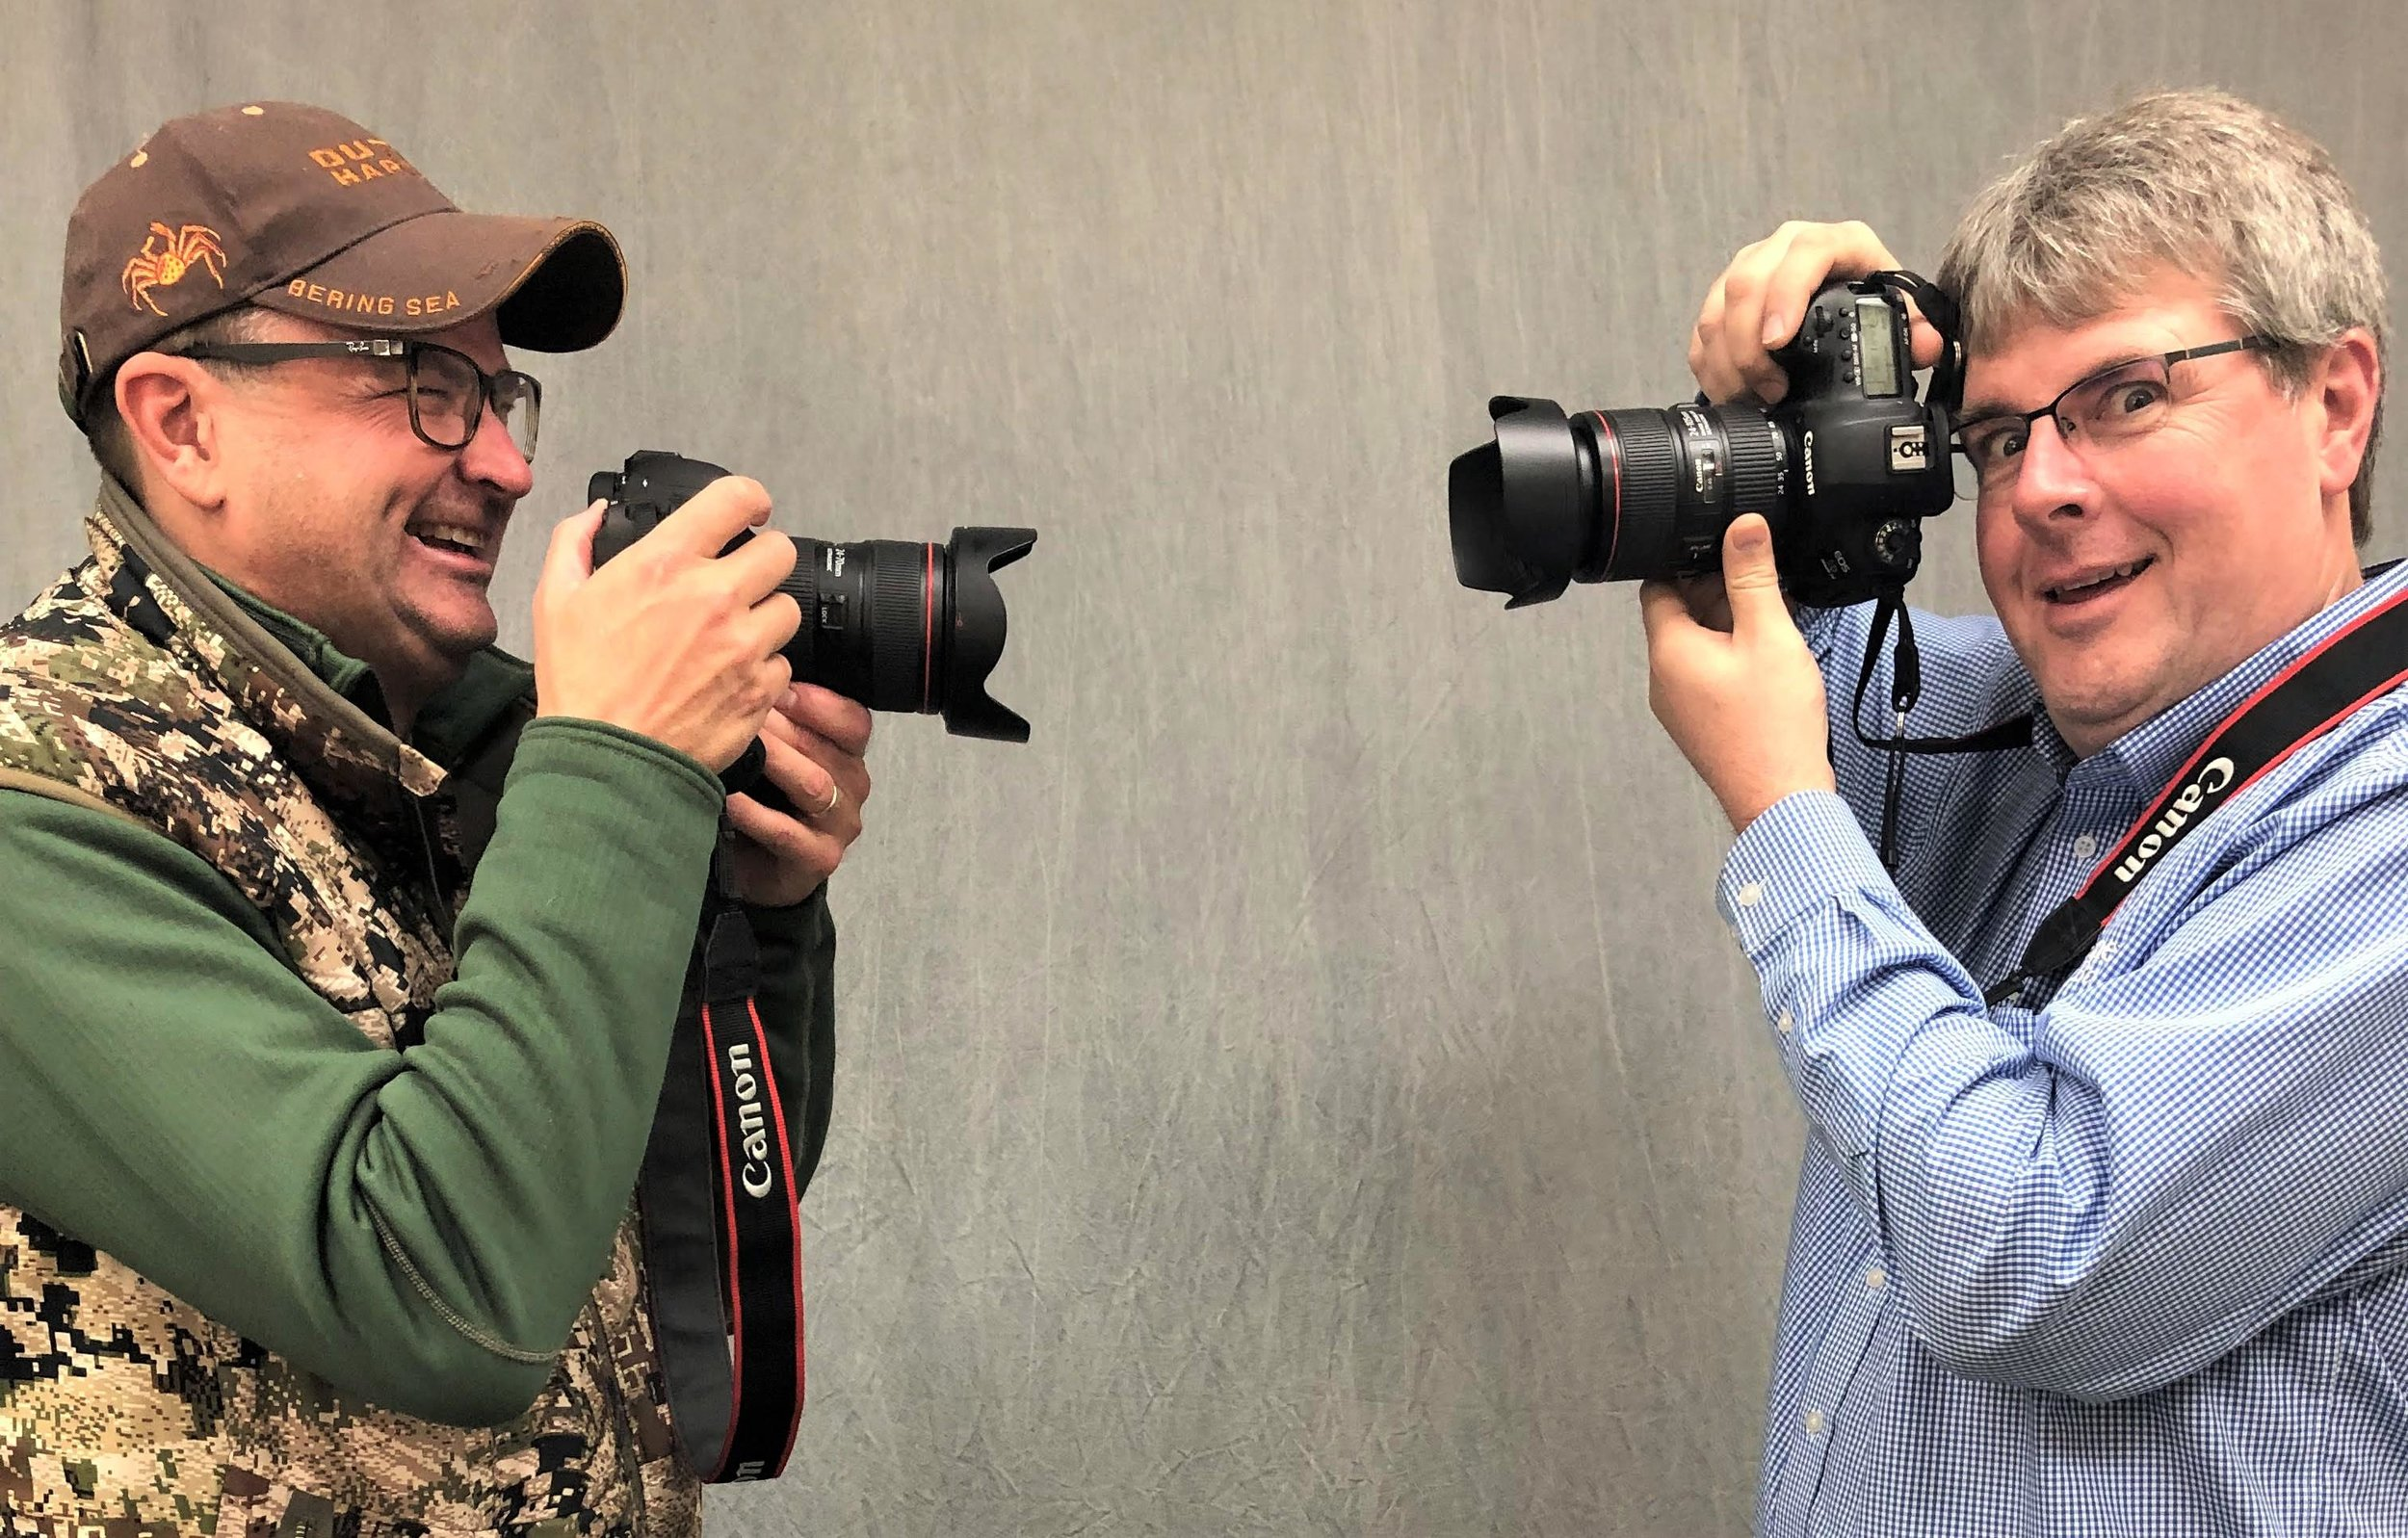 Longtime friends and amateur photographers Dave Baer, left, and Jim Sinclair goof around during a photo shoot at the Tribune in early March. (Paula Quam / Tribune)